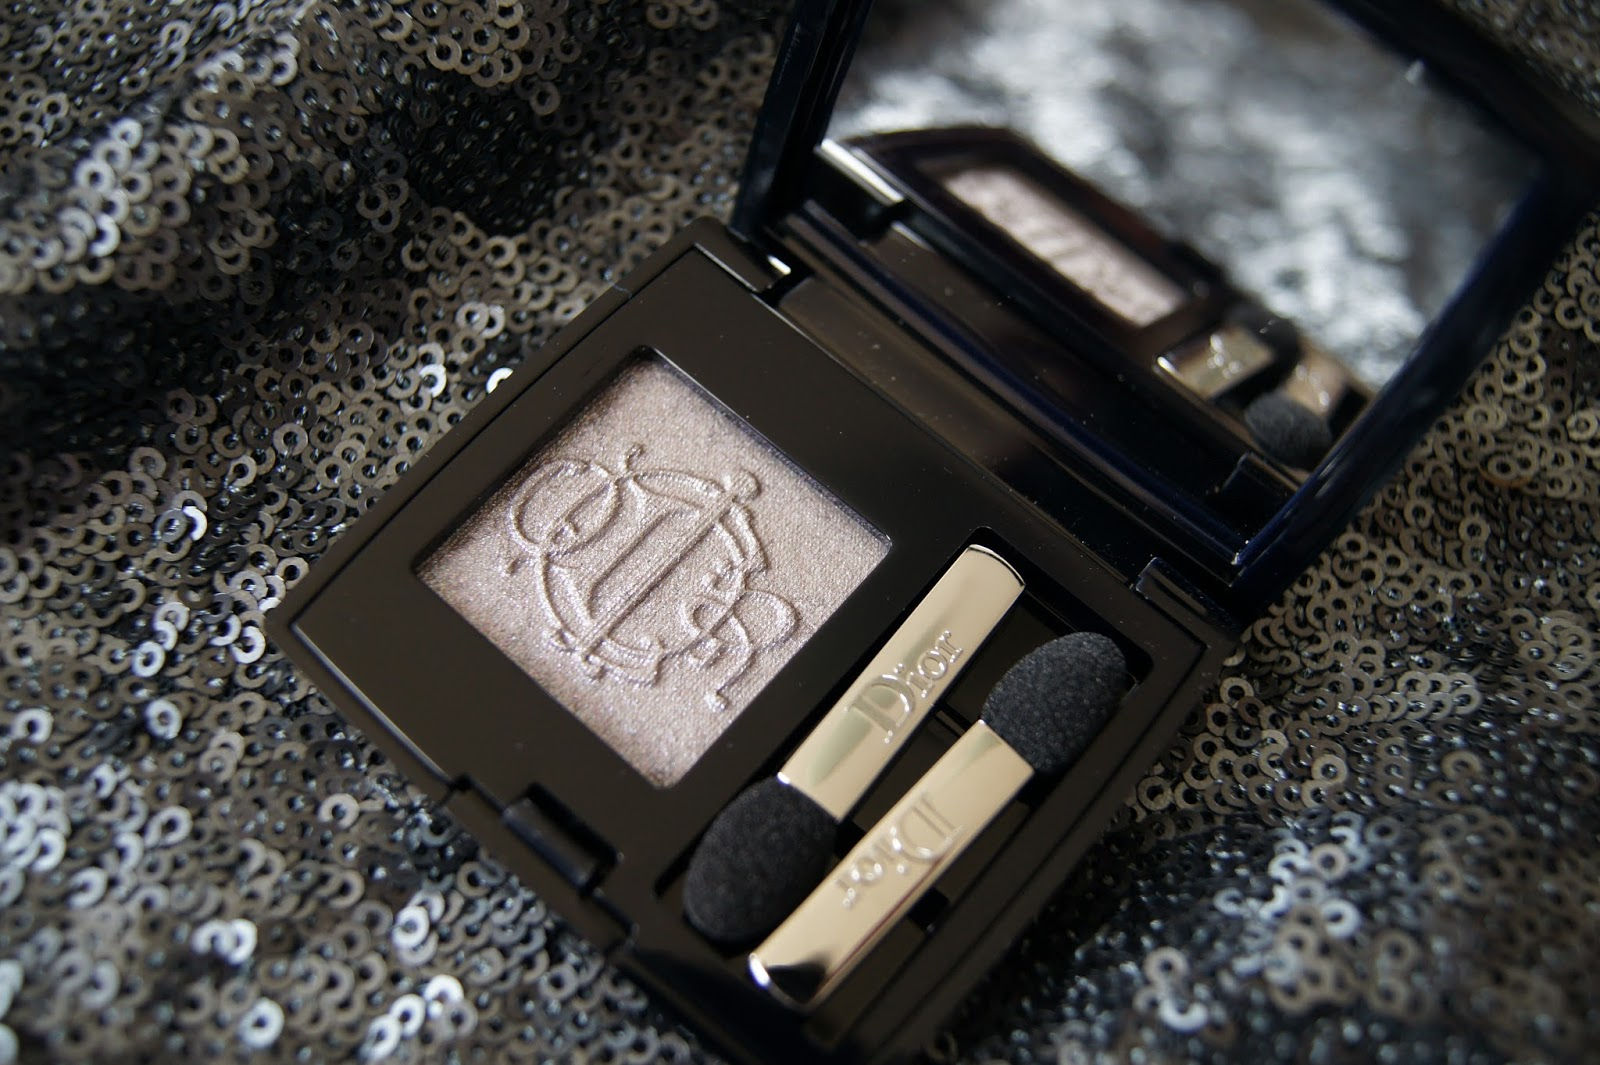 Dior Kingdom of Colors Spring 2015-Fairy Gray mono eyeshadow